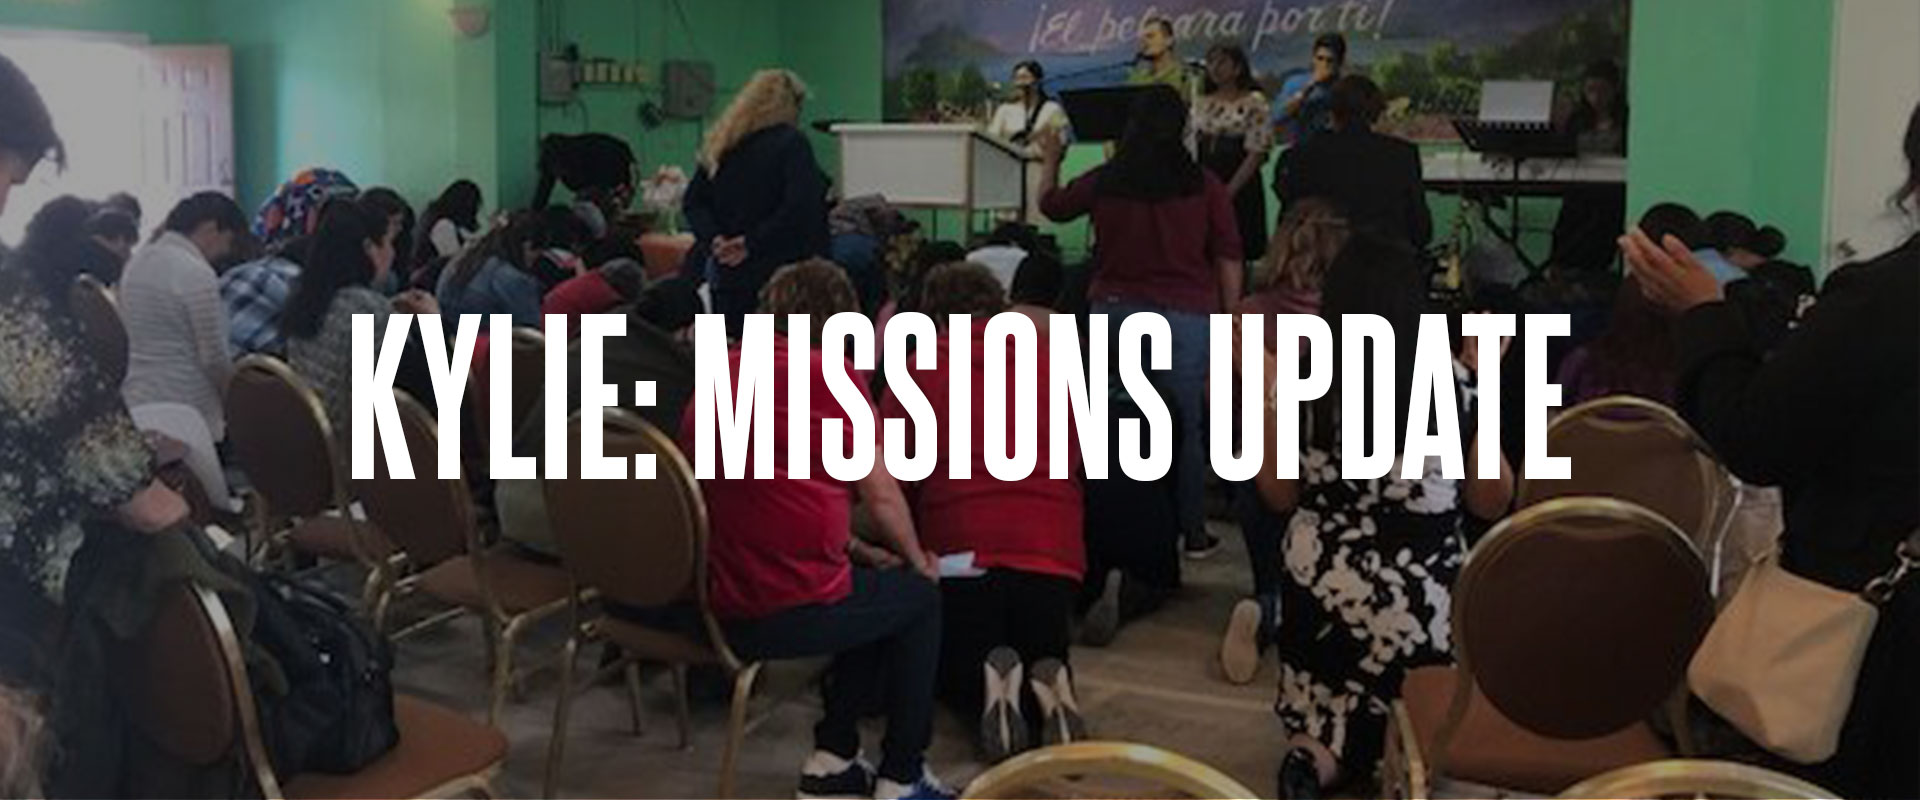 Kylie Missions Update: April